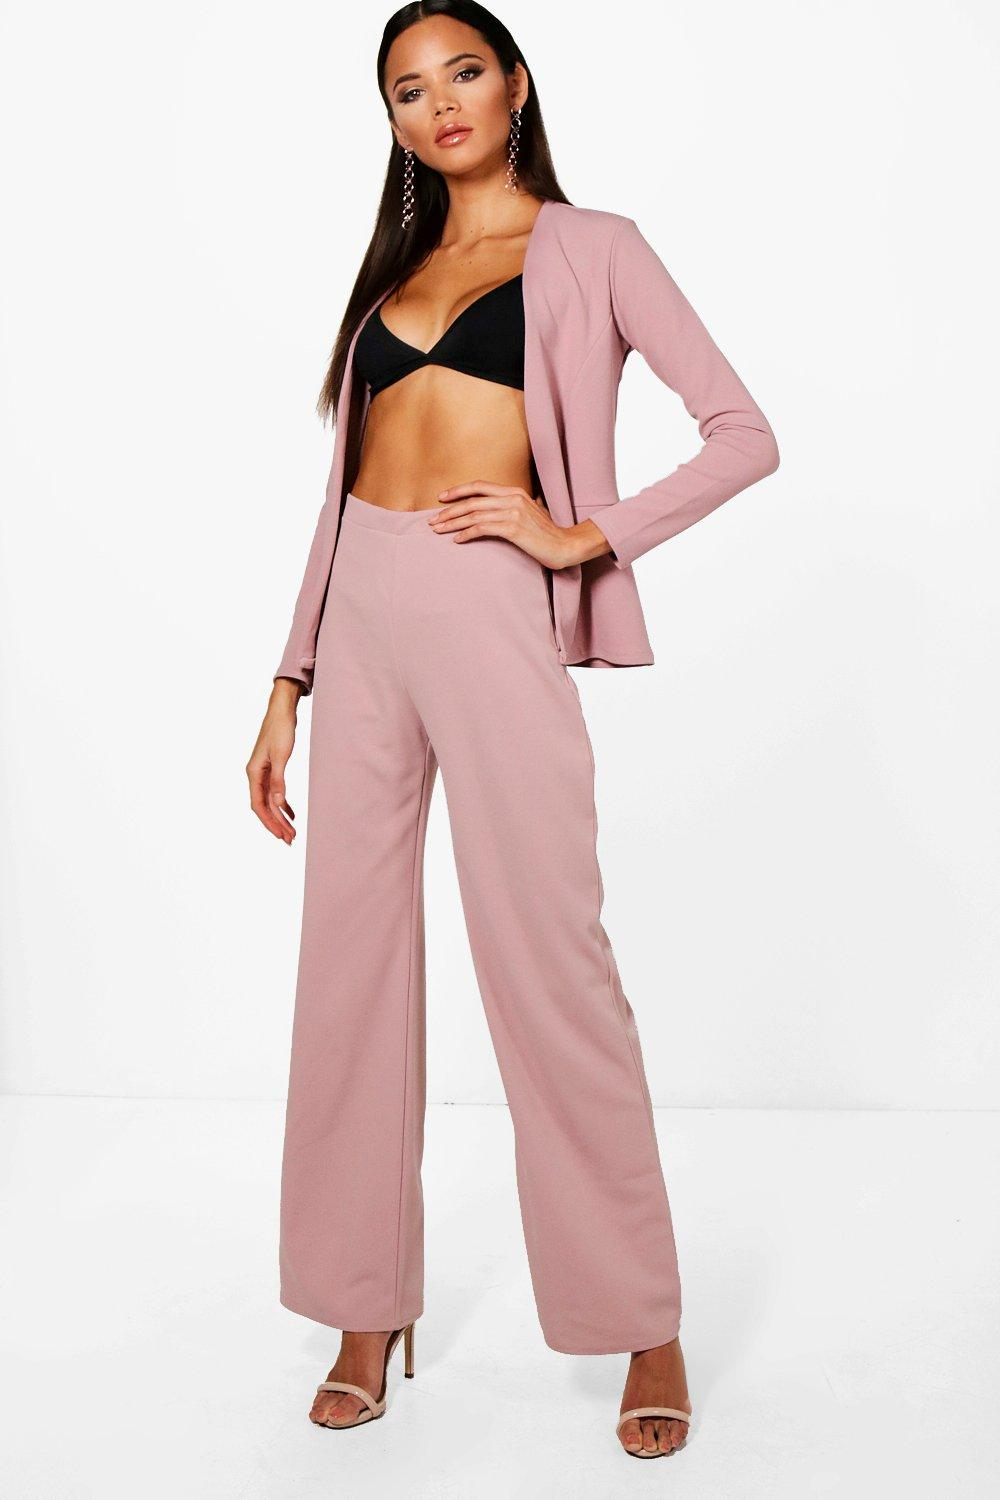 Shop women's trousers & wide leg pants at trueiupnbp.gq Discover a stylish selection of the latest brand name and designer fashions all at a great value.